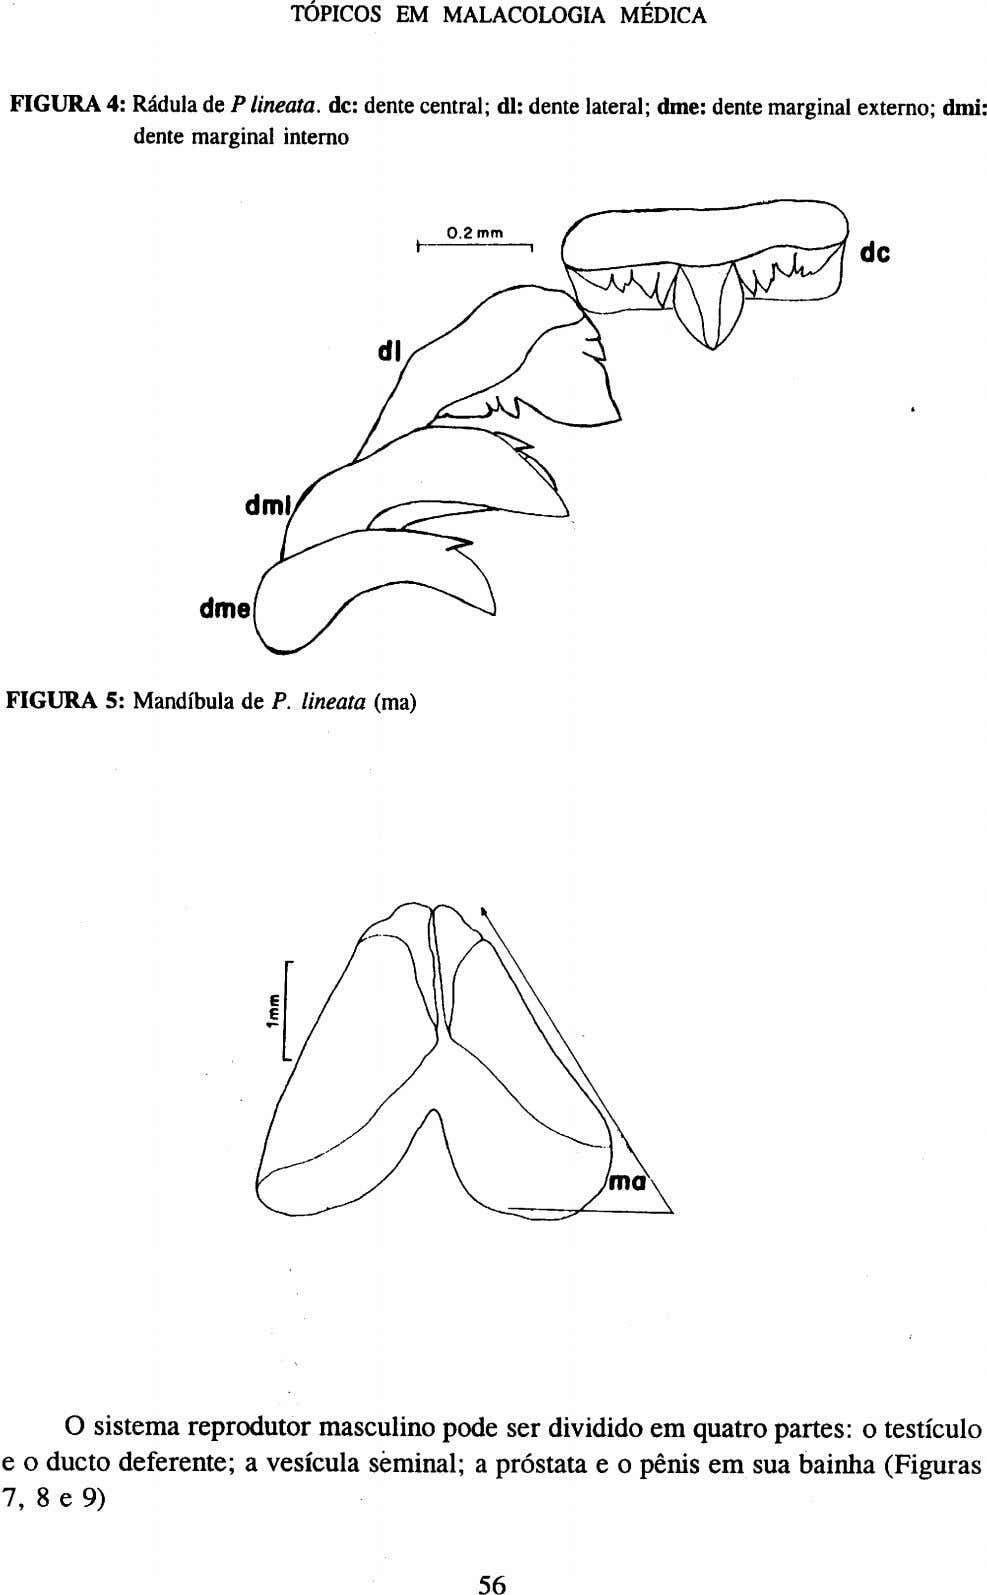 FIGURA 4: Rádula de P lineata. de: dente central; dl: dente lateral; dme: dente marginal